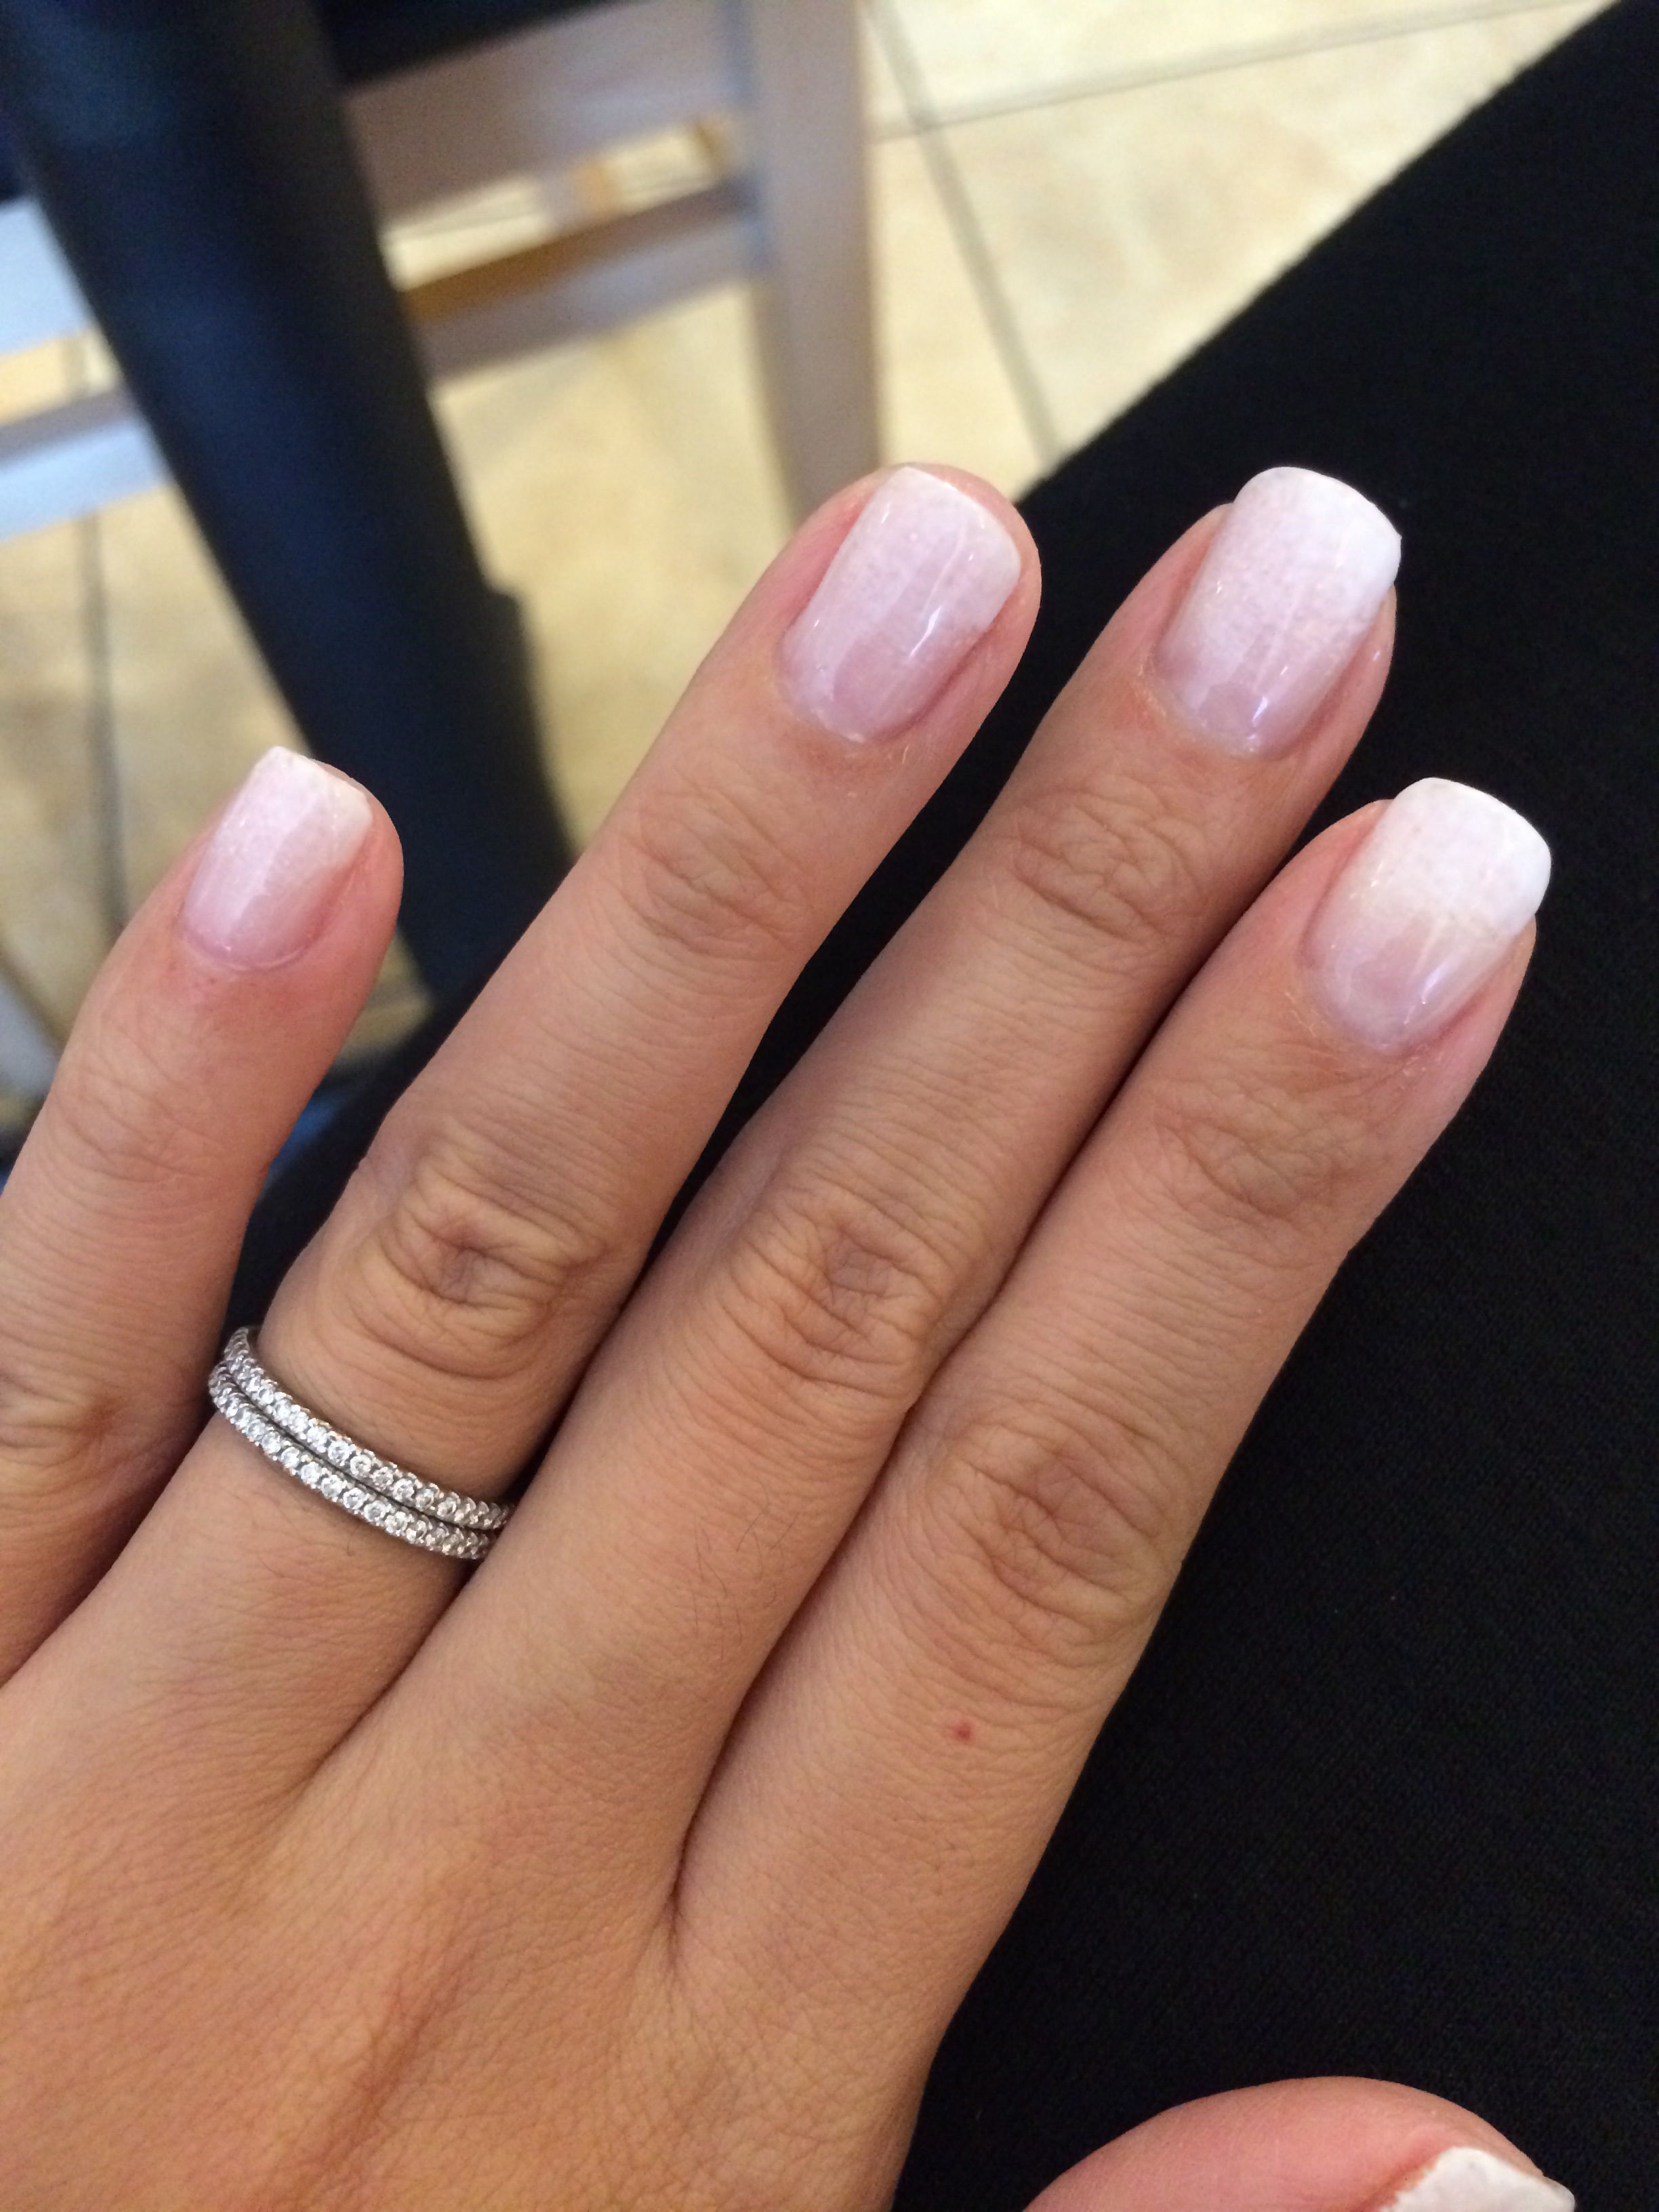 Ombré French manicure | Nails | Pinterest | Manicure, Makeup and ...